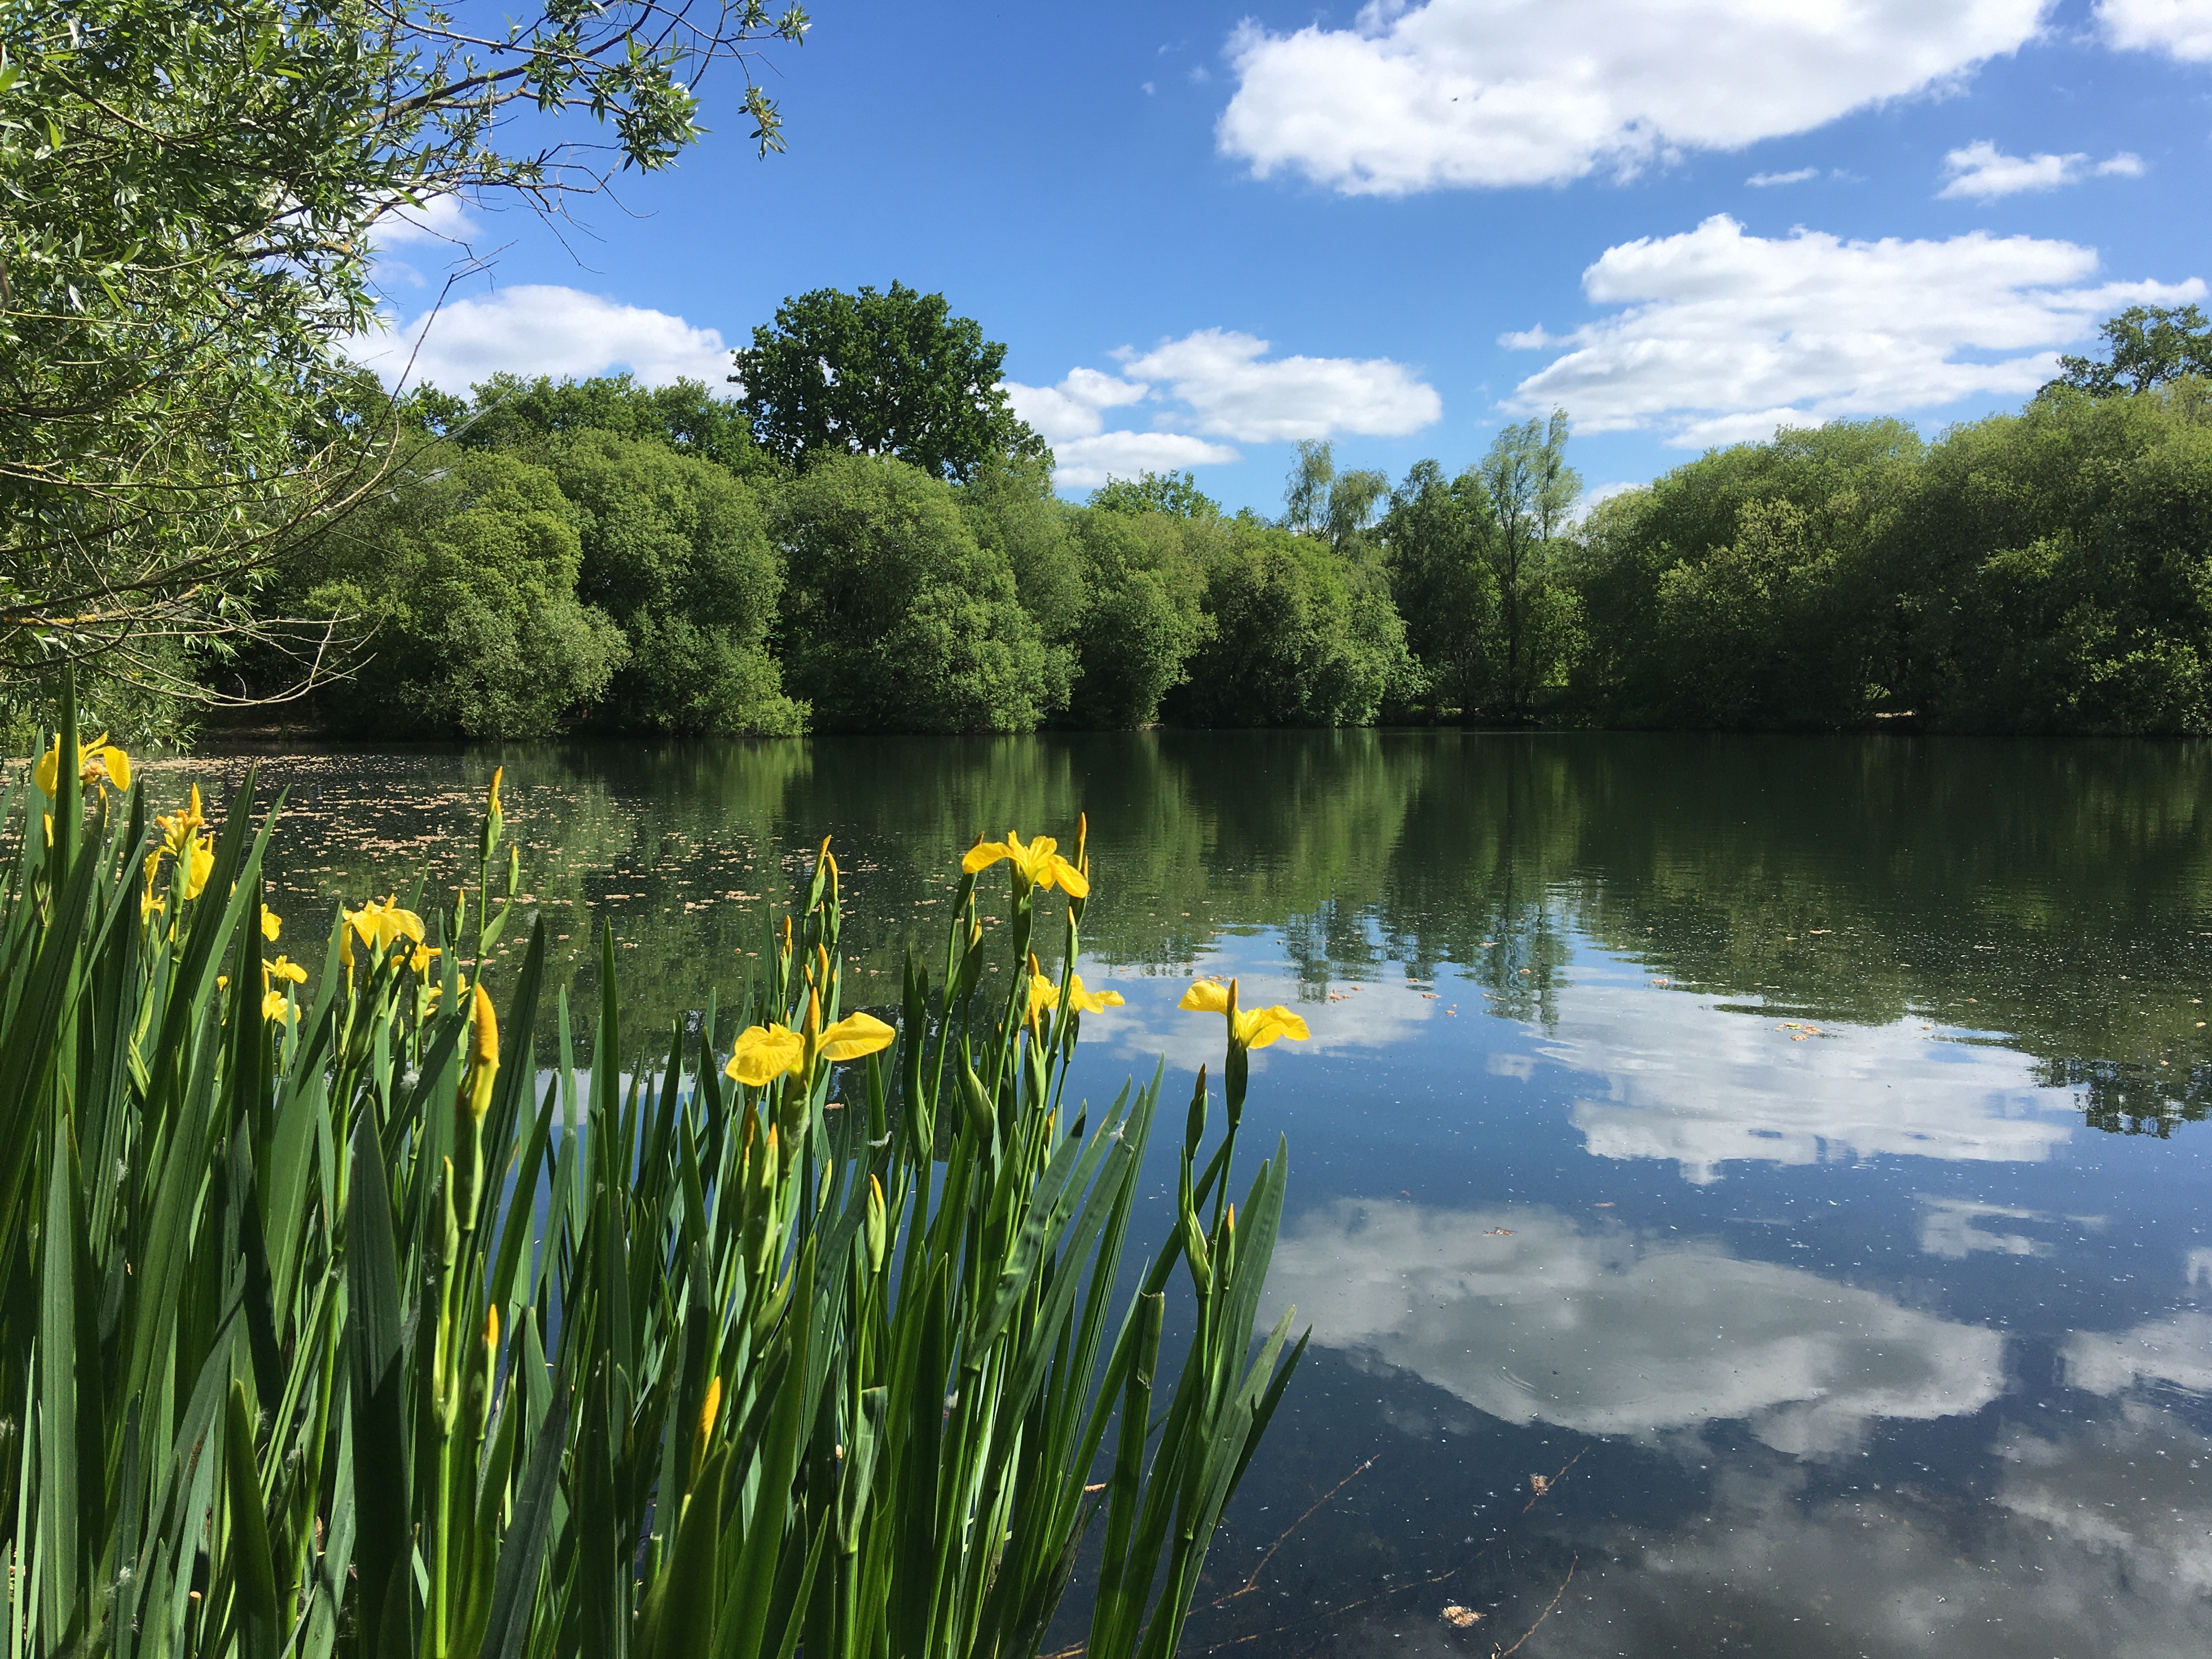 Cherie Cheetham - Swan Lake Country Park